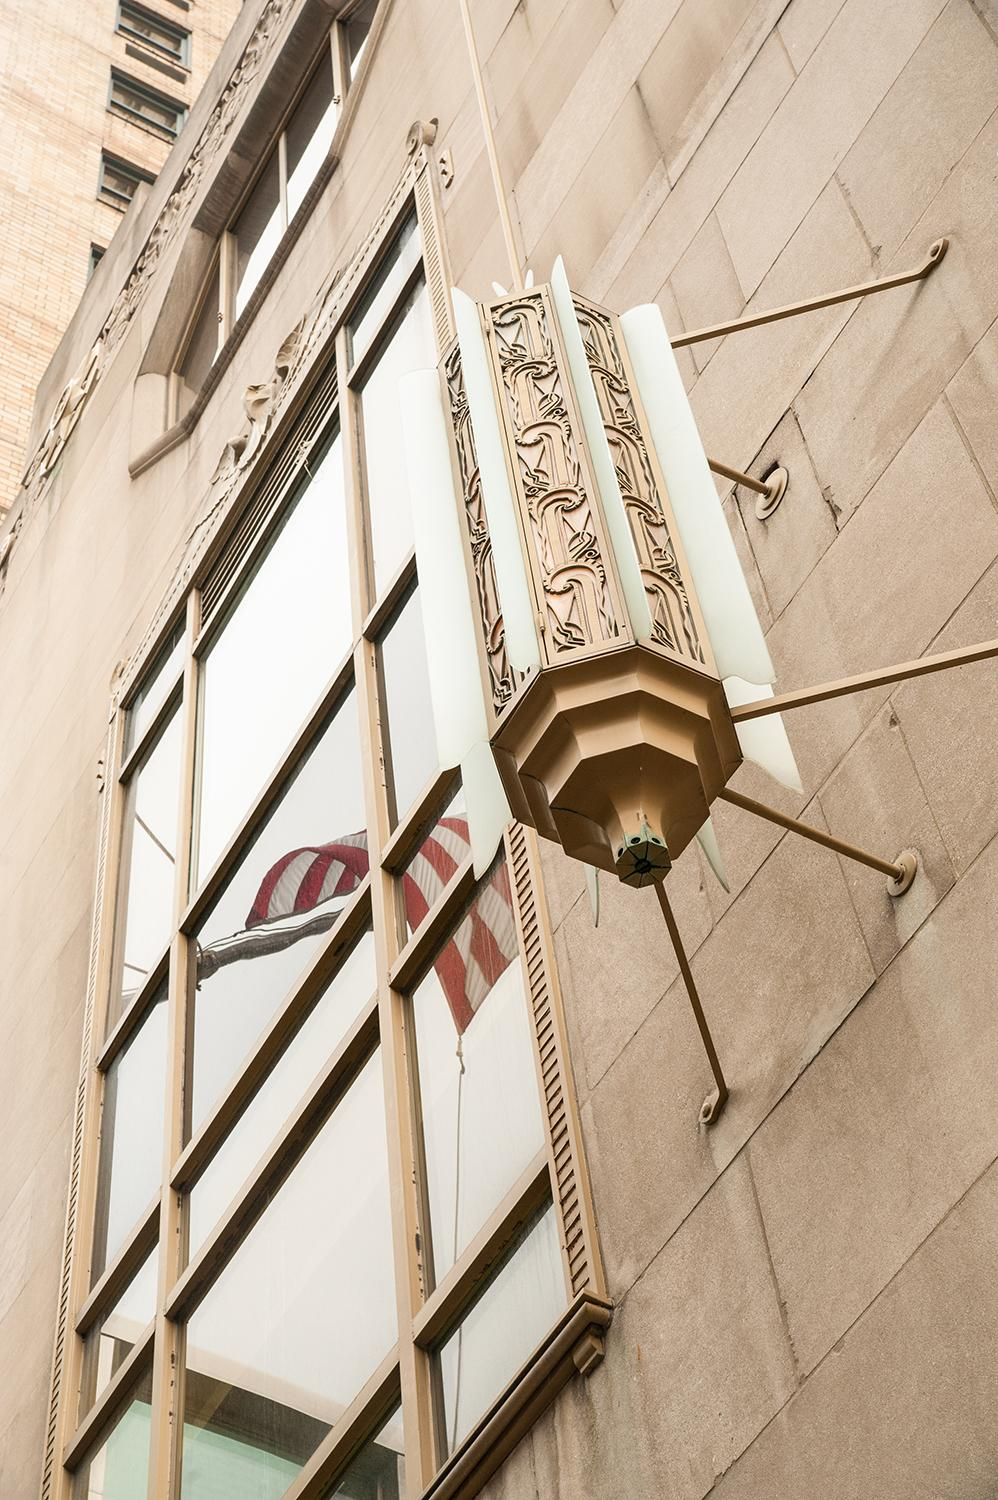 BUILDING: Hilton Cincinnati Netherland Plaza / LOCATION: 35 W 5th St (45202) -- Downtown / TIDBIT: The French Art Deco aesthetic can be found throughout the building, with light fixtures often playing a starring role. / IMAGE: Melissa Doss Sliney